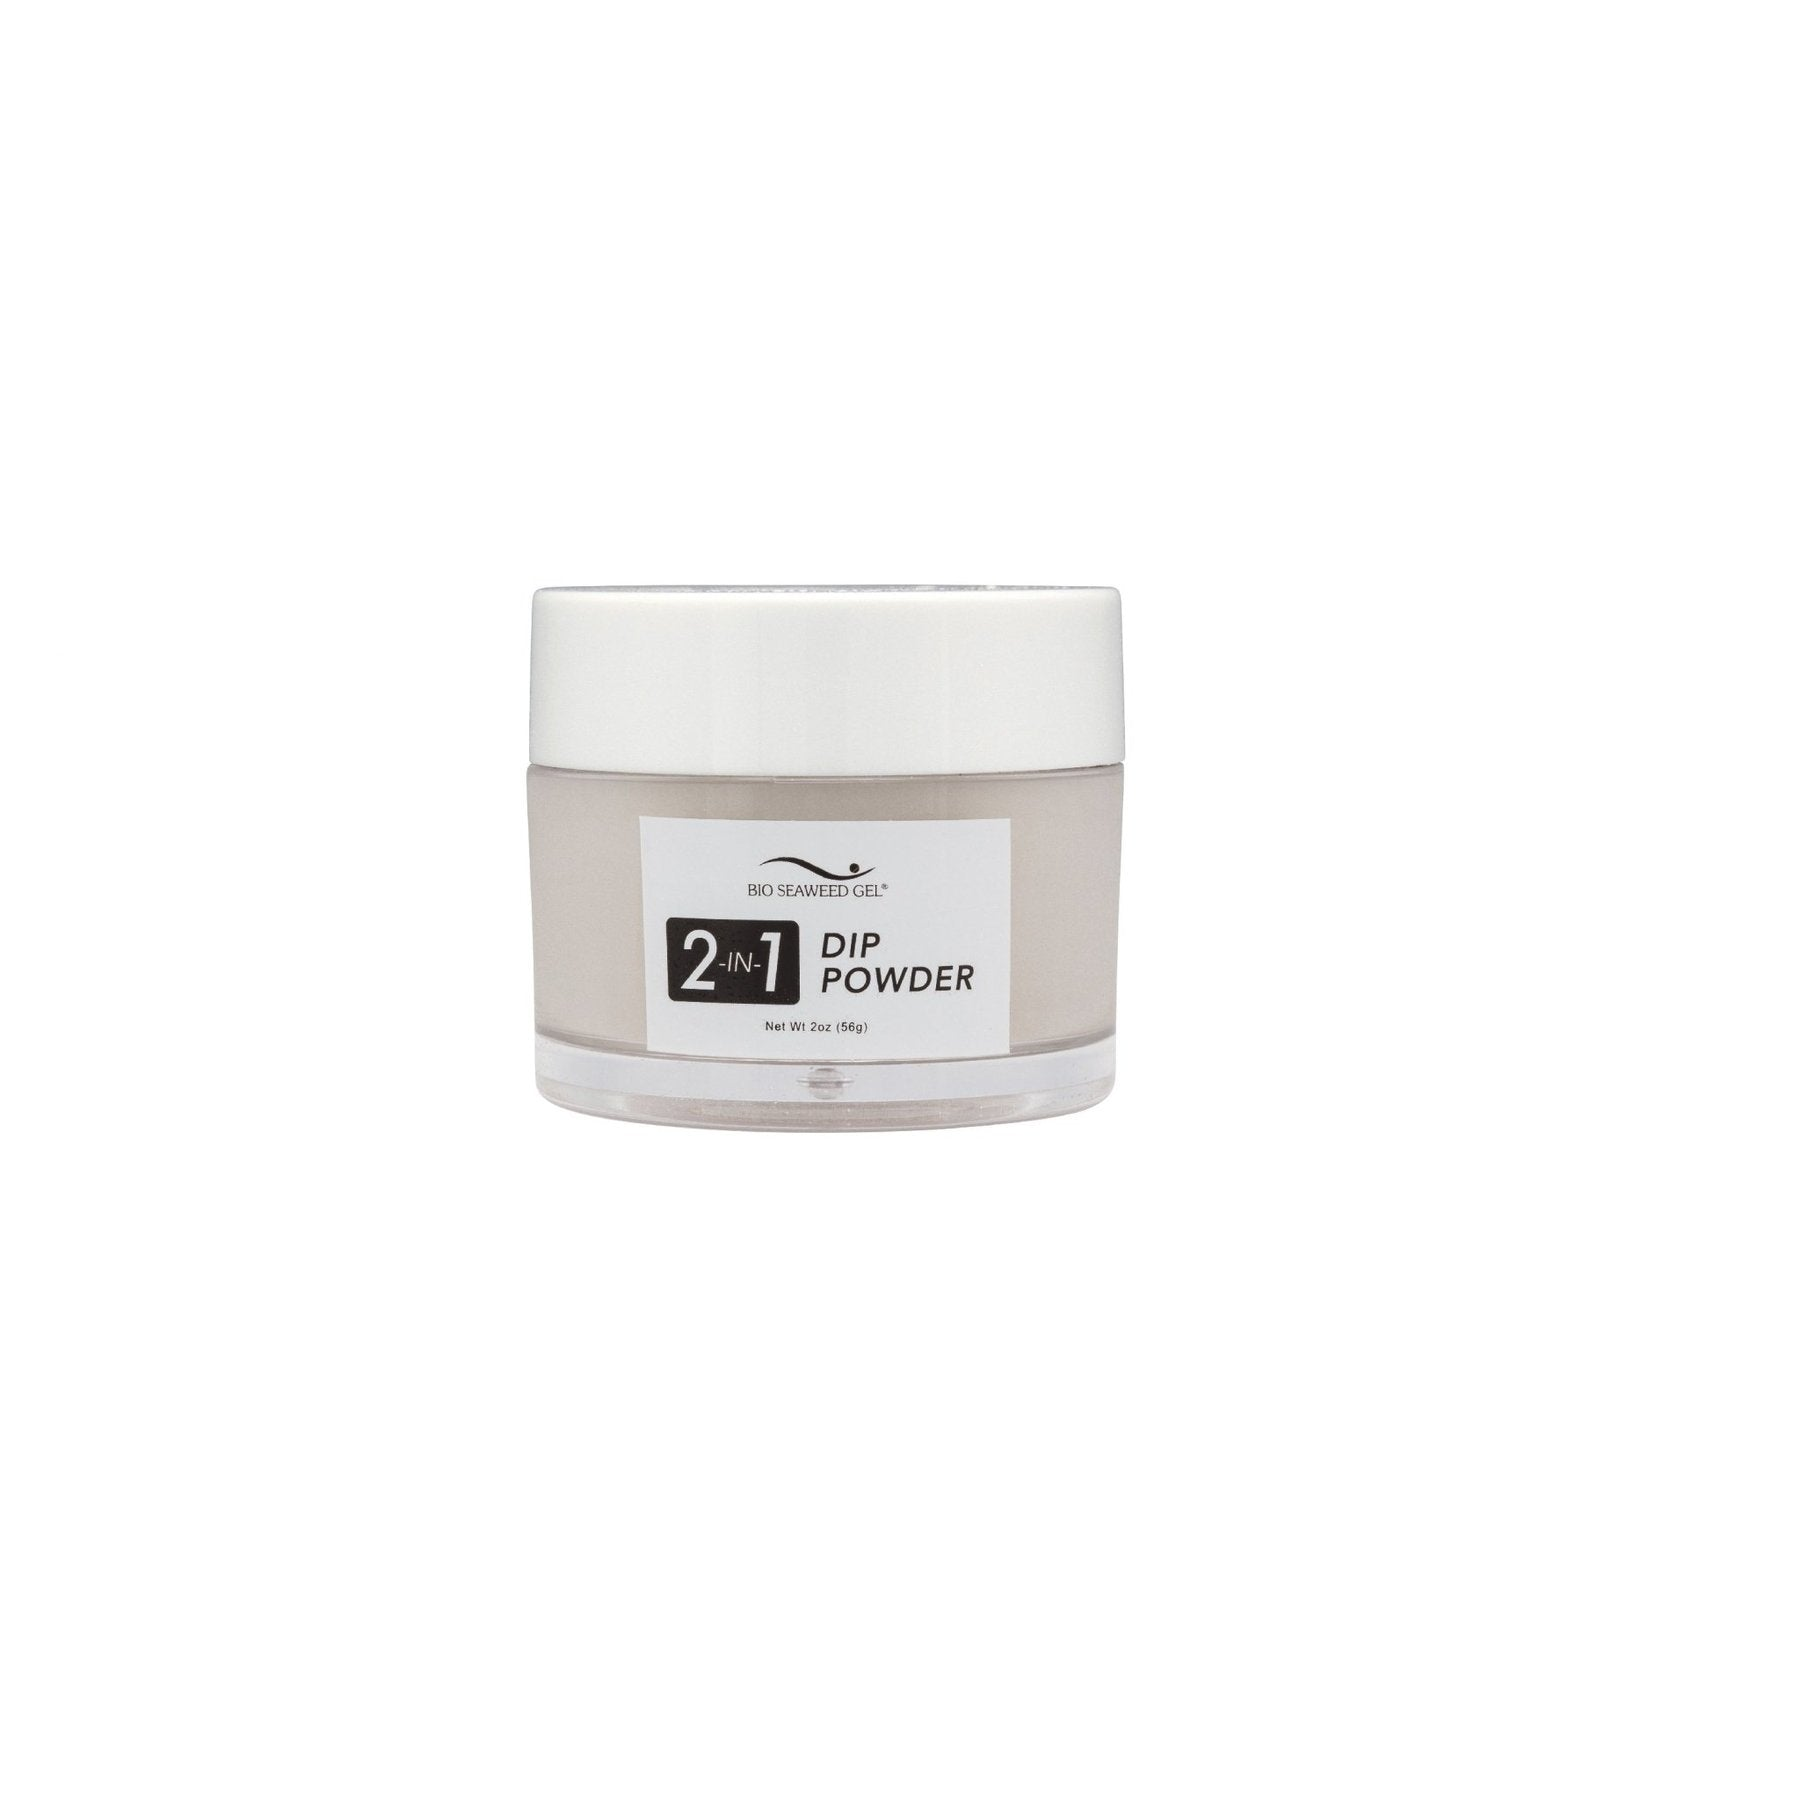 83 ARE YOU SHORE? | Bio Seaweed Gel® Dip Powder System - CM Nails & Beauty Supply